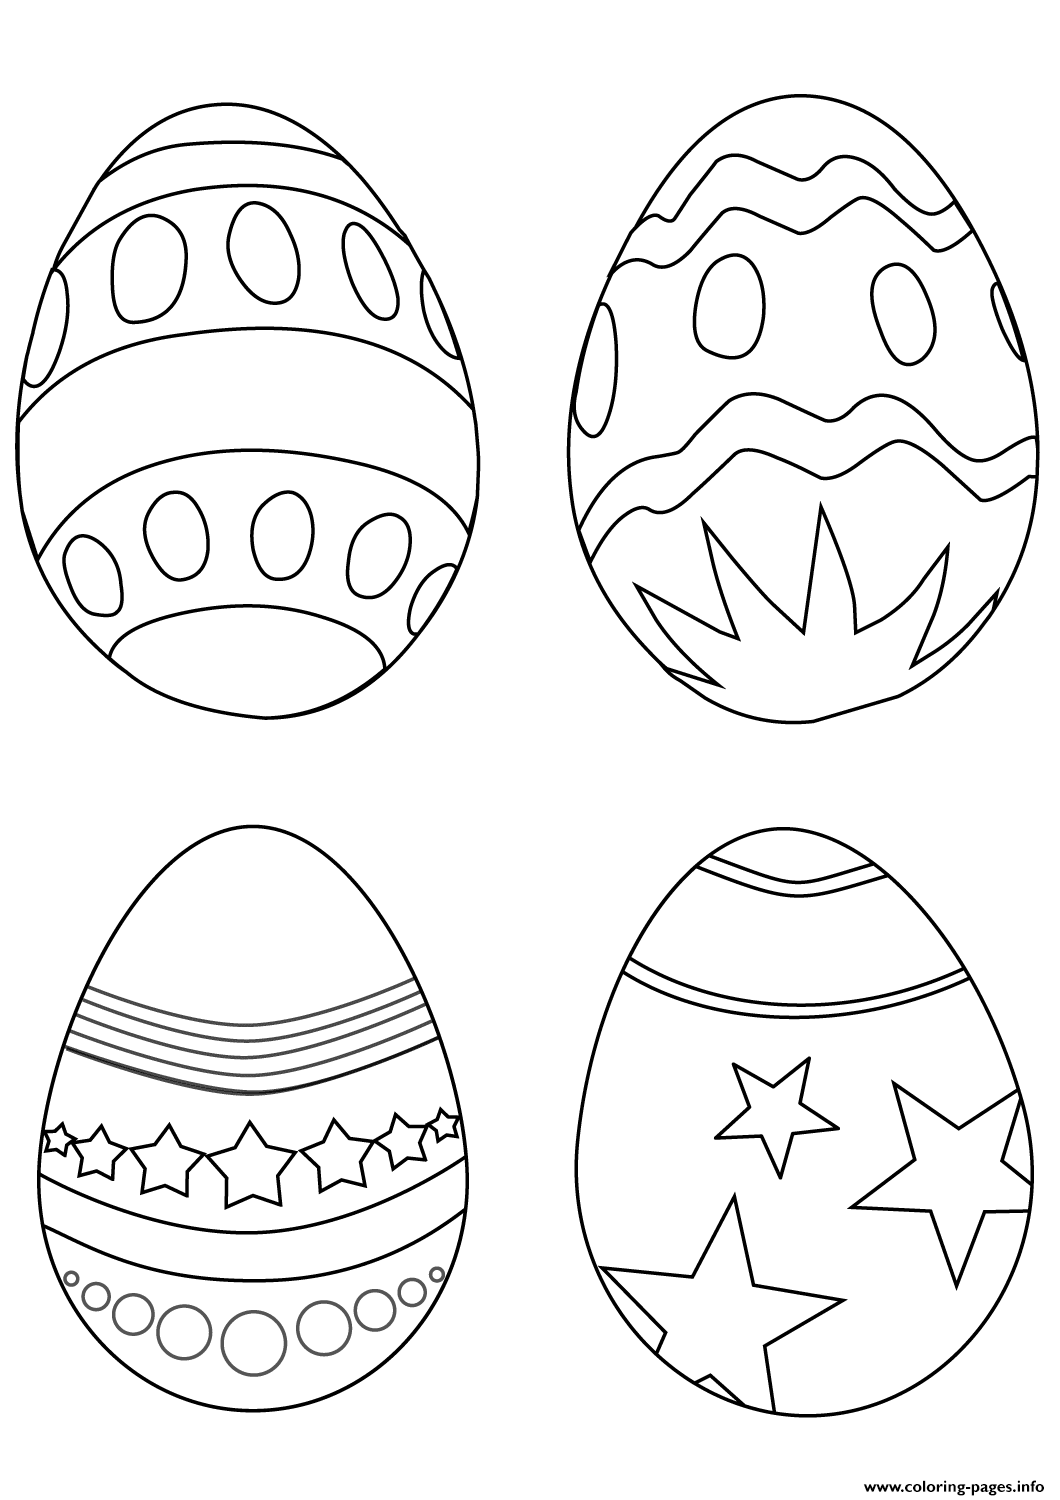 Print simple easter eggs coloring pages (With images